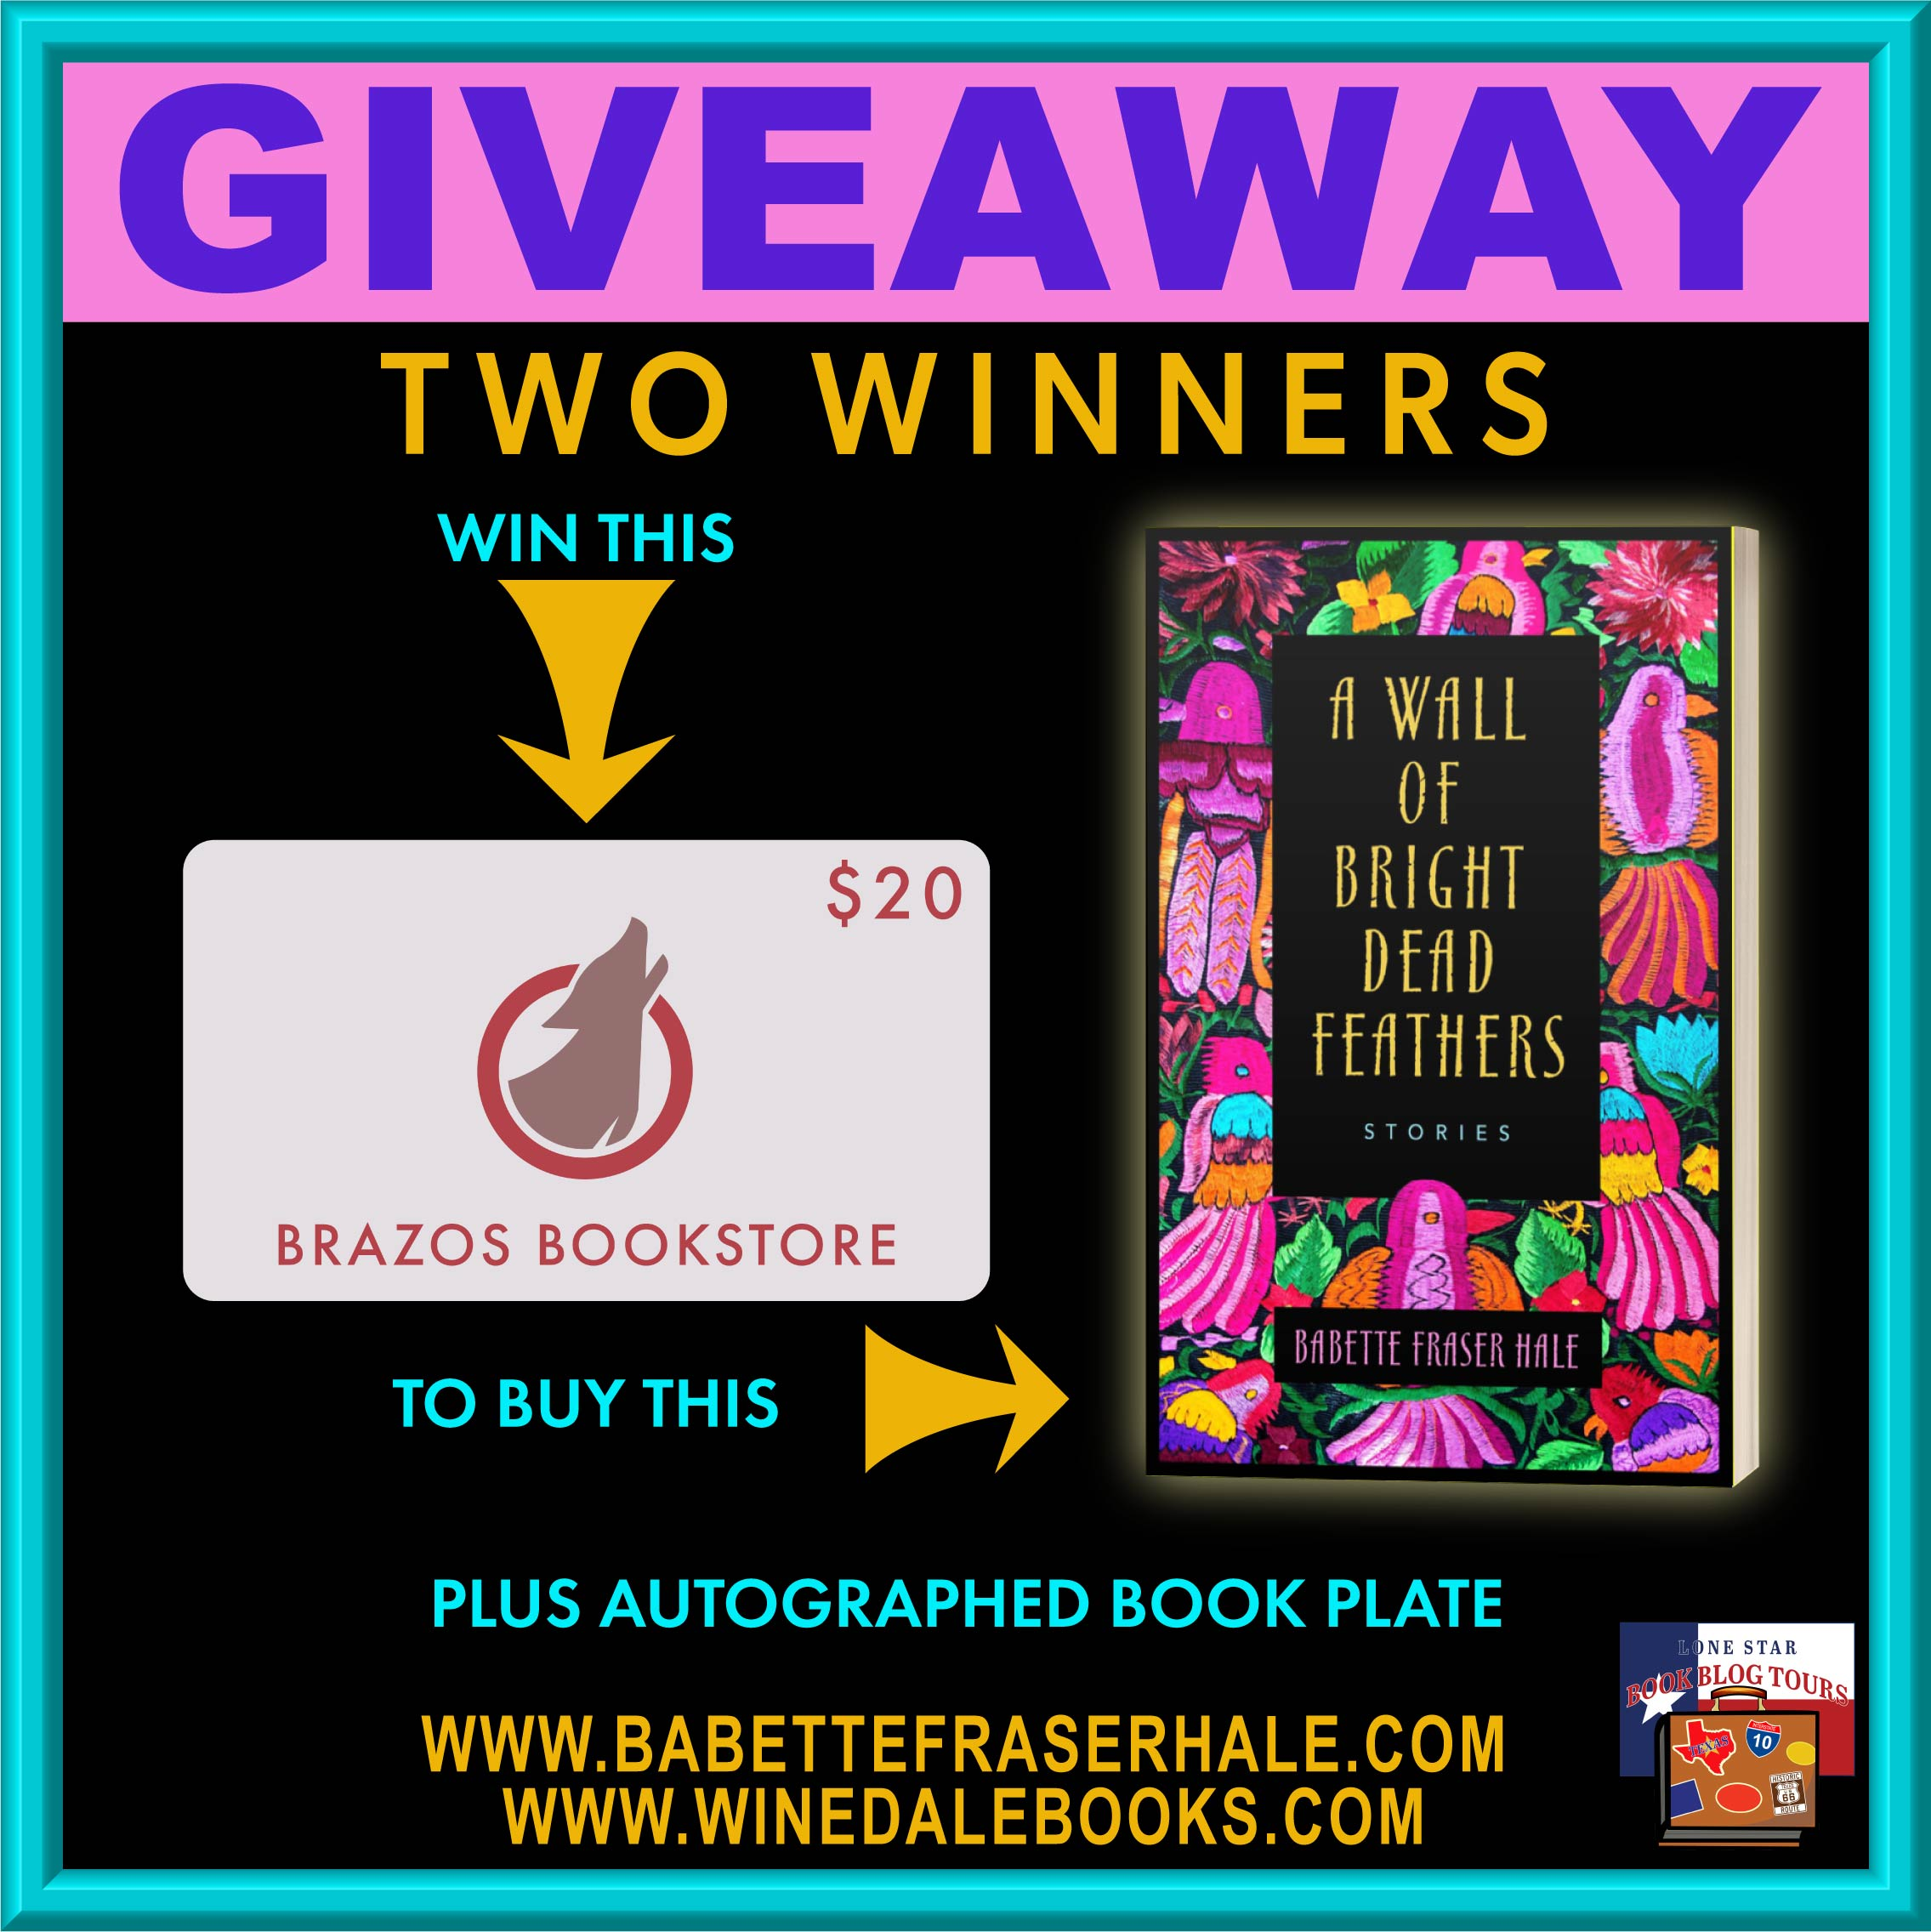 Review & Giveaway: A Wall of Bright Dead Feathers by Babette Fraser Hale